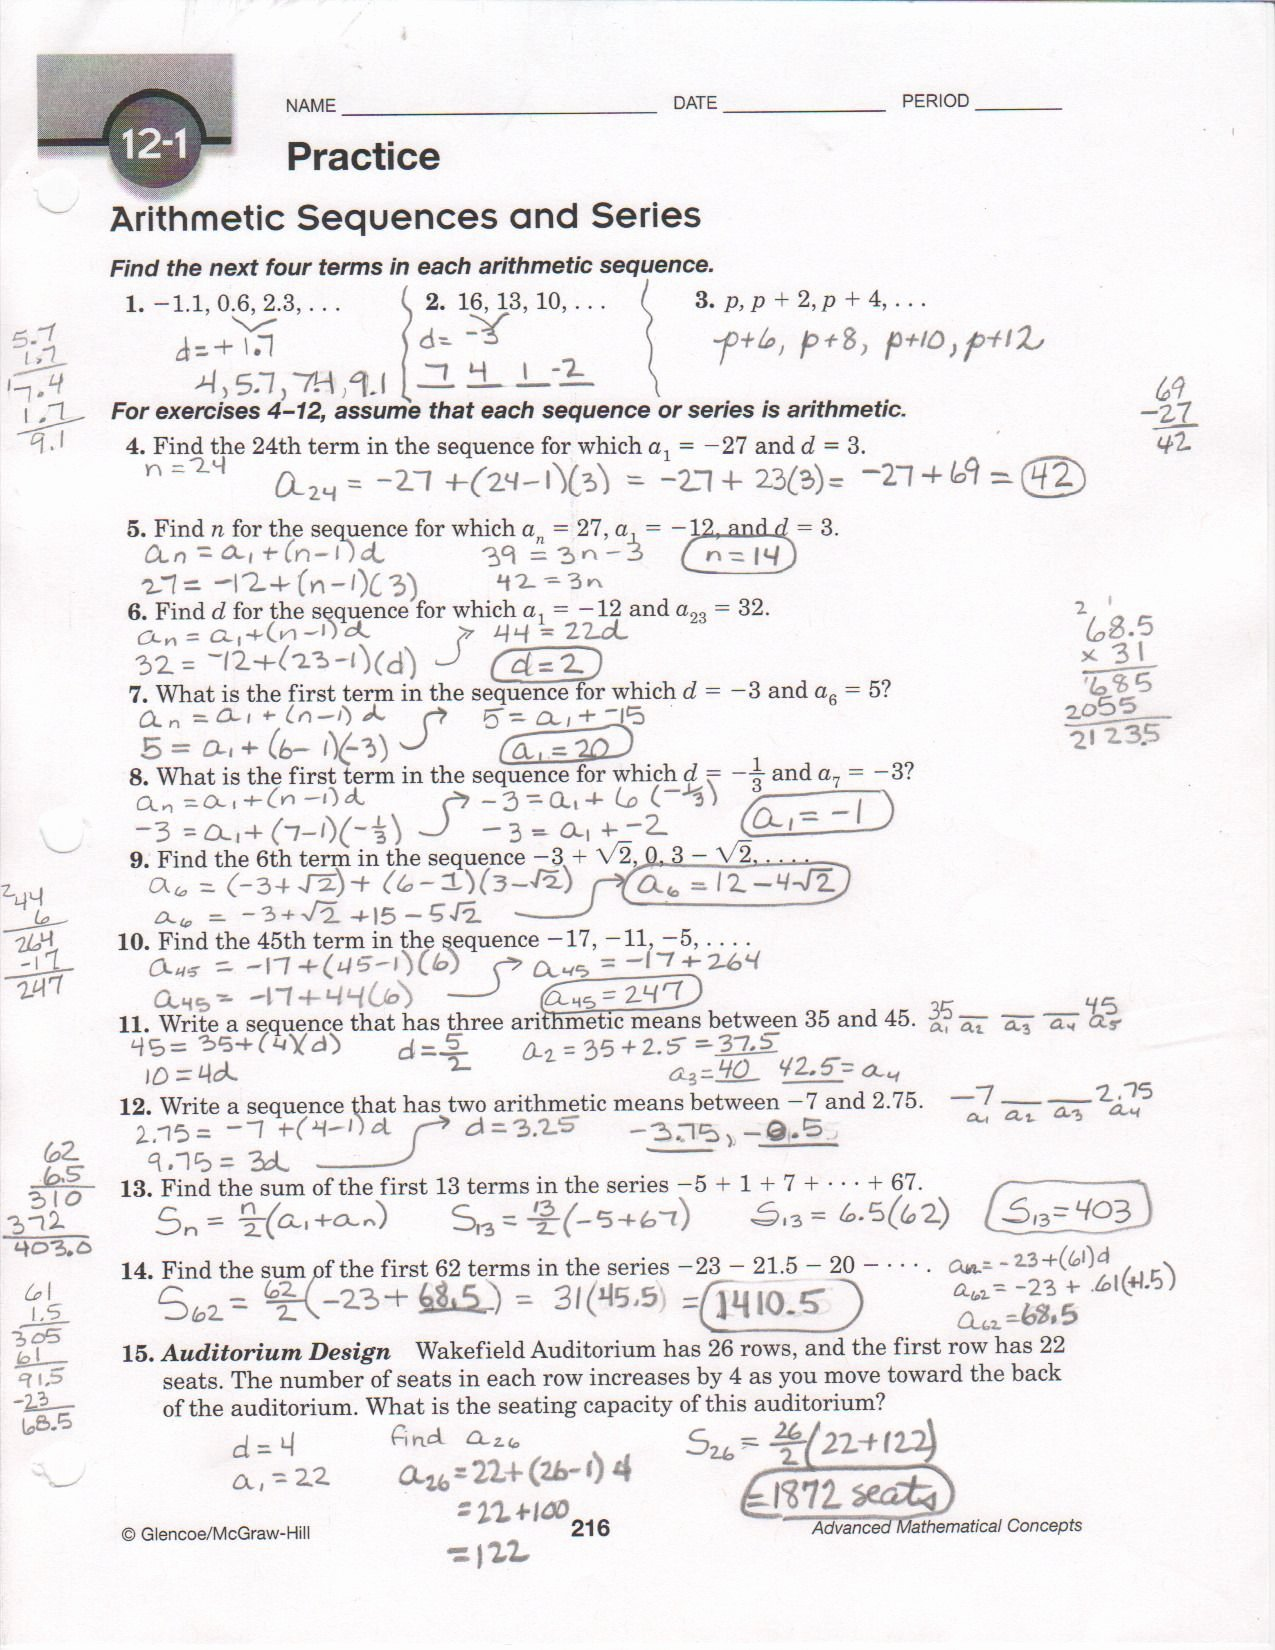 Sequences and Series Worksheet Answers New Arithmetic Sequences Worksheet 1 Answer Key